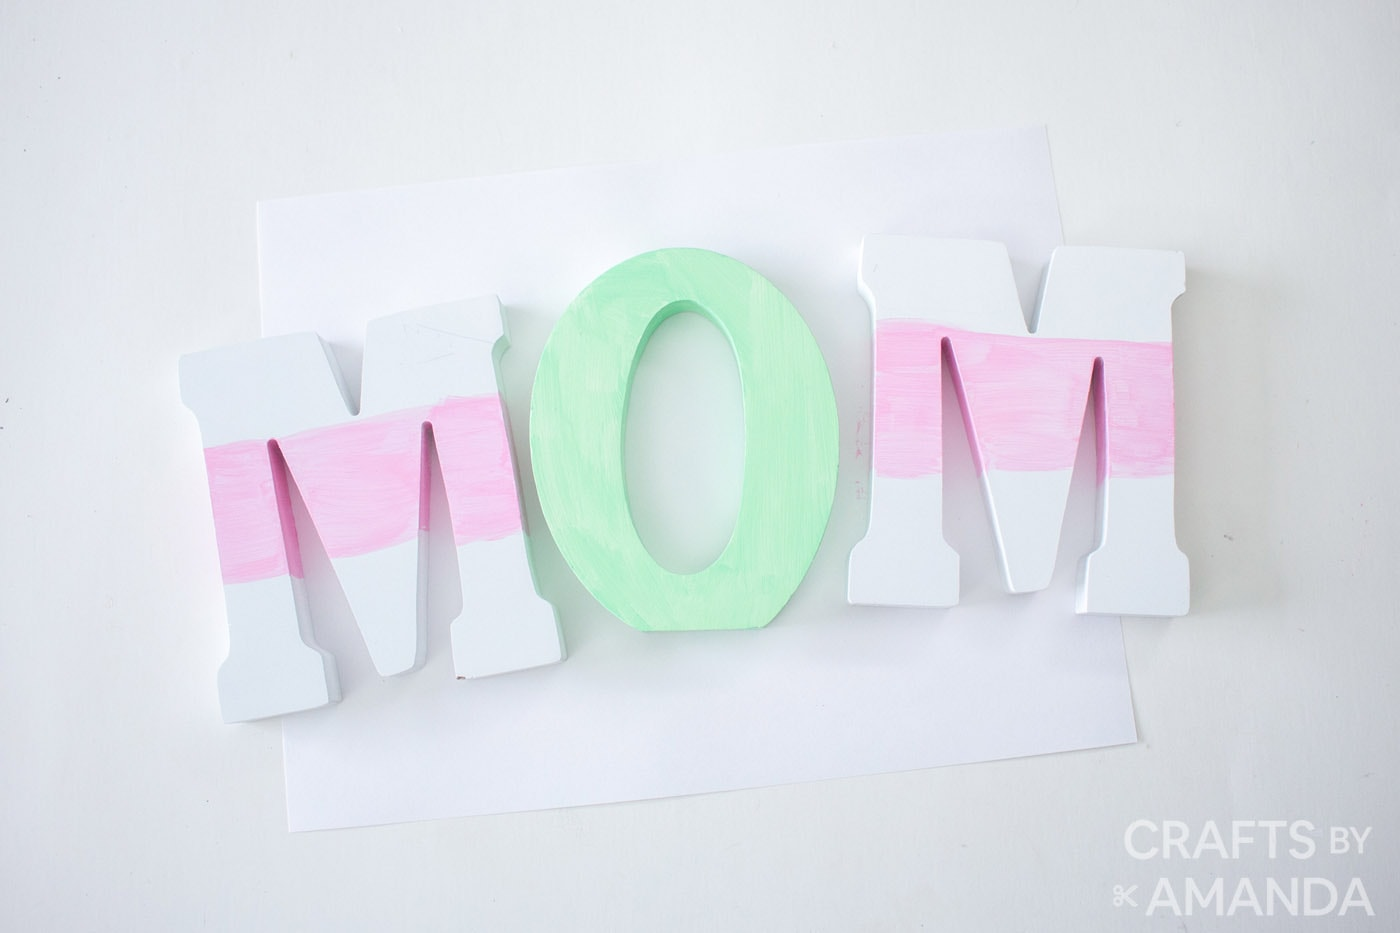 Mom spelt out in wood letters with O being green